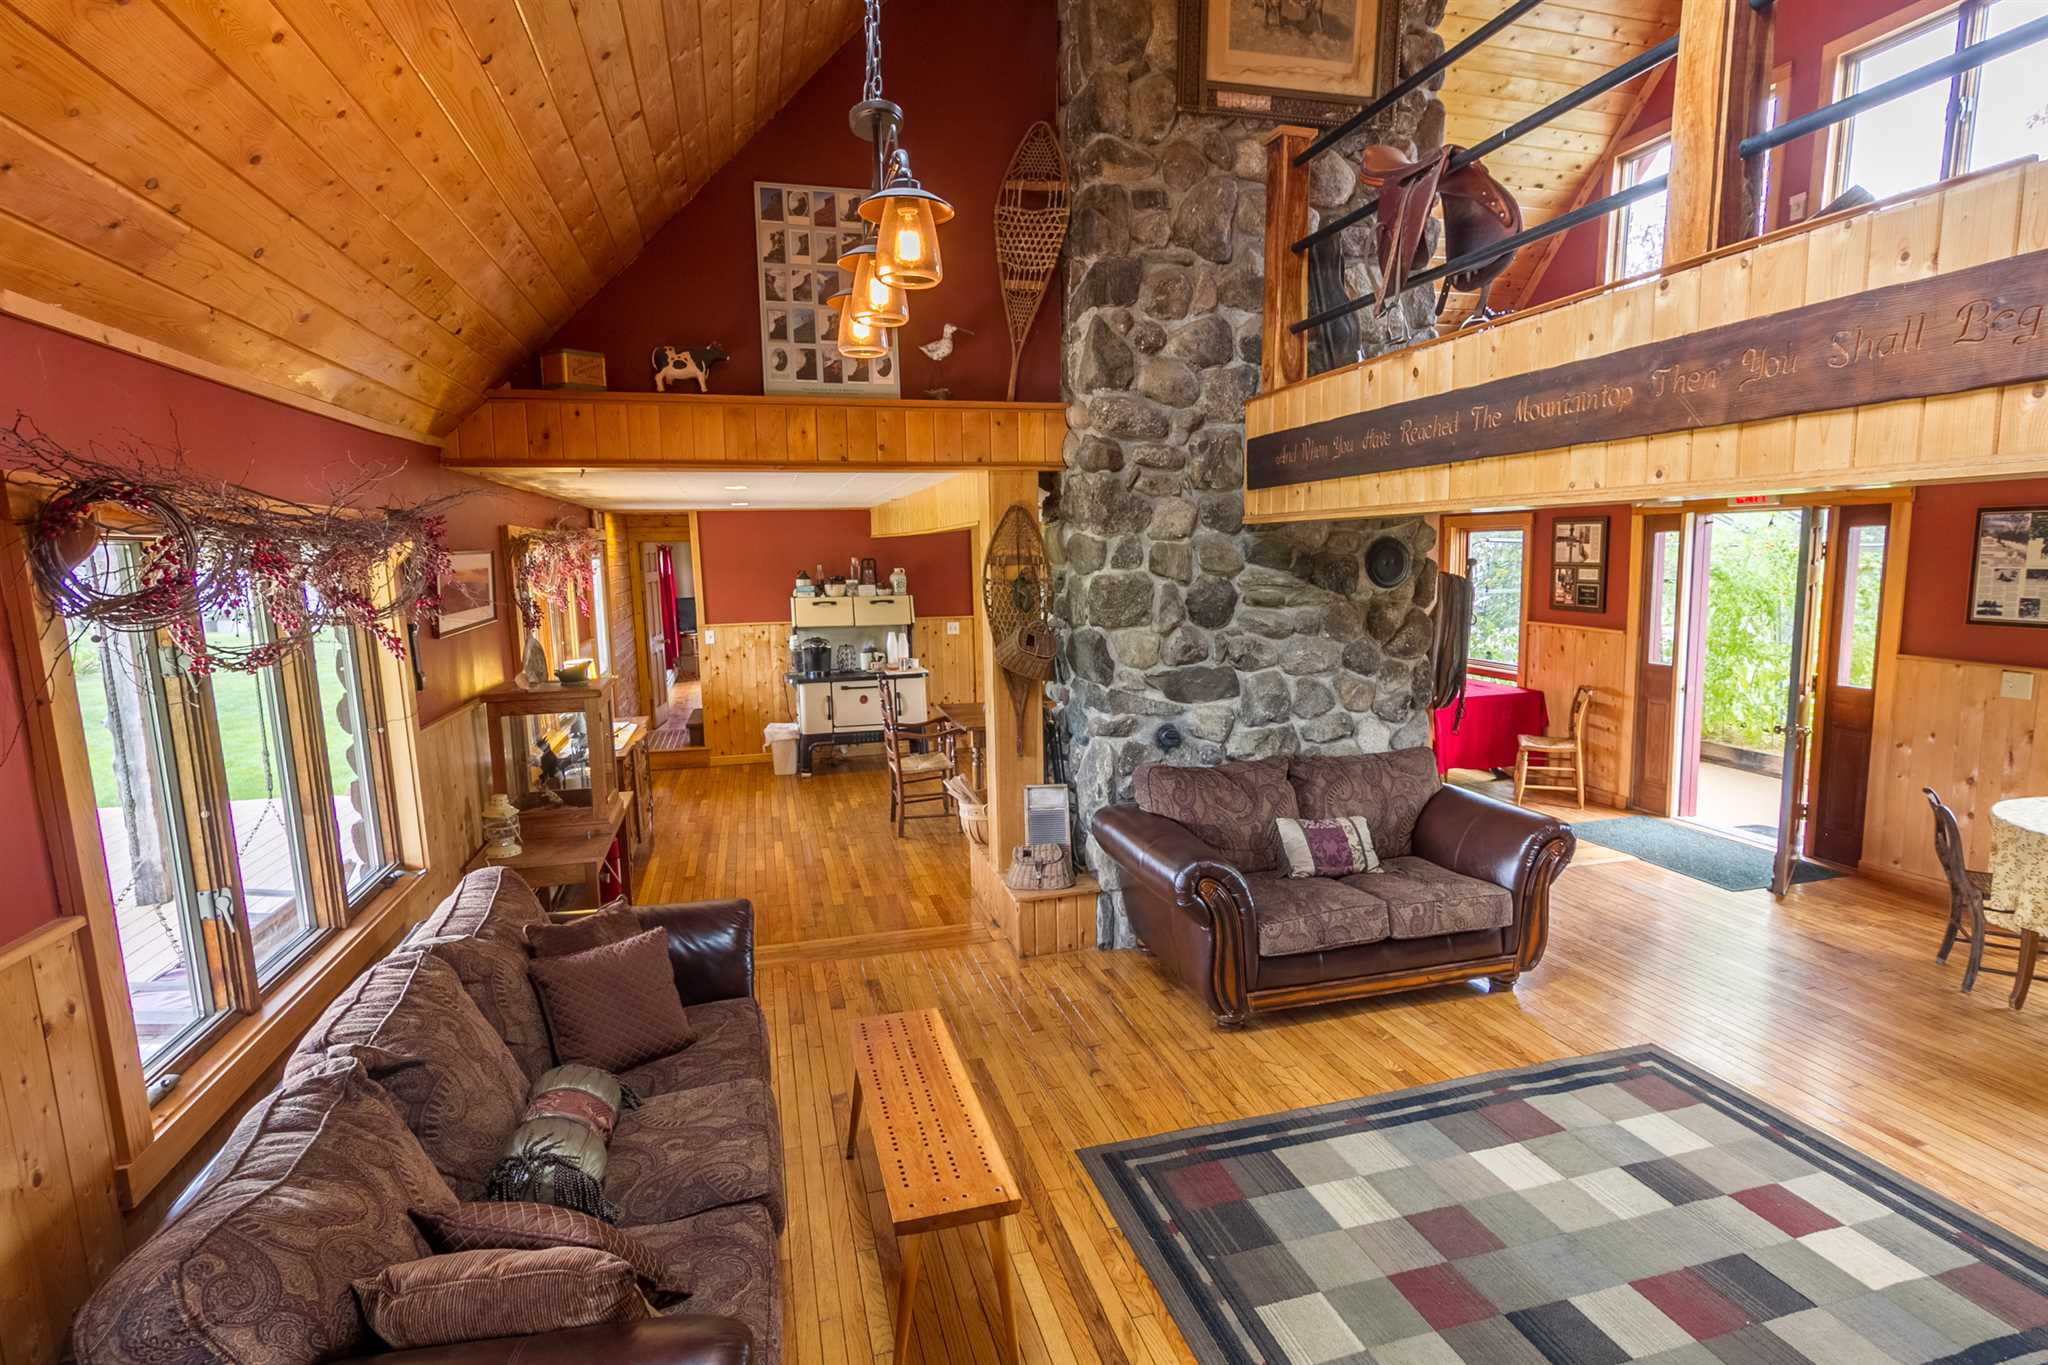 What a great package! This 6 bedroom log home, with chefs kitchen and vaulted ceilings is paired with a gorgeous 3 story barn having 9 stalls, and tack room with a function hall and 2 generous apartments overlooking 16 acres of fenced pasture with dressage ring. With your very own solar field surrounded by fruit trees and plenty of garden space you're on the right path to sustainability! Circular driveway, with attached 2 car garage and additional open air storage provides a convenience much appreciated. This piece of heaven is a short distance to all amenities including schools, health car, shopping, dining and more. Don't forget the recreational opportunities too! The snowmobile corridor is close by, and hiking, biking and skiing is just out your door - and that river, what an opportunity for rafting and fishing! Looking for MORE land? Check out this same great property with 70+ additional acres for $649,000 under MLS 4788940!